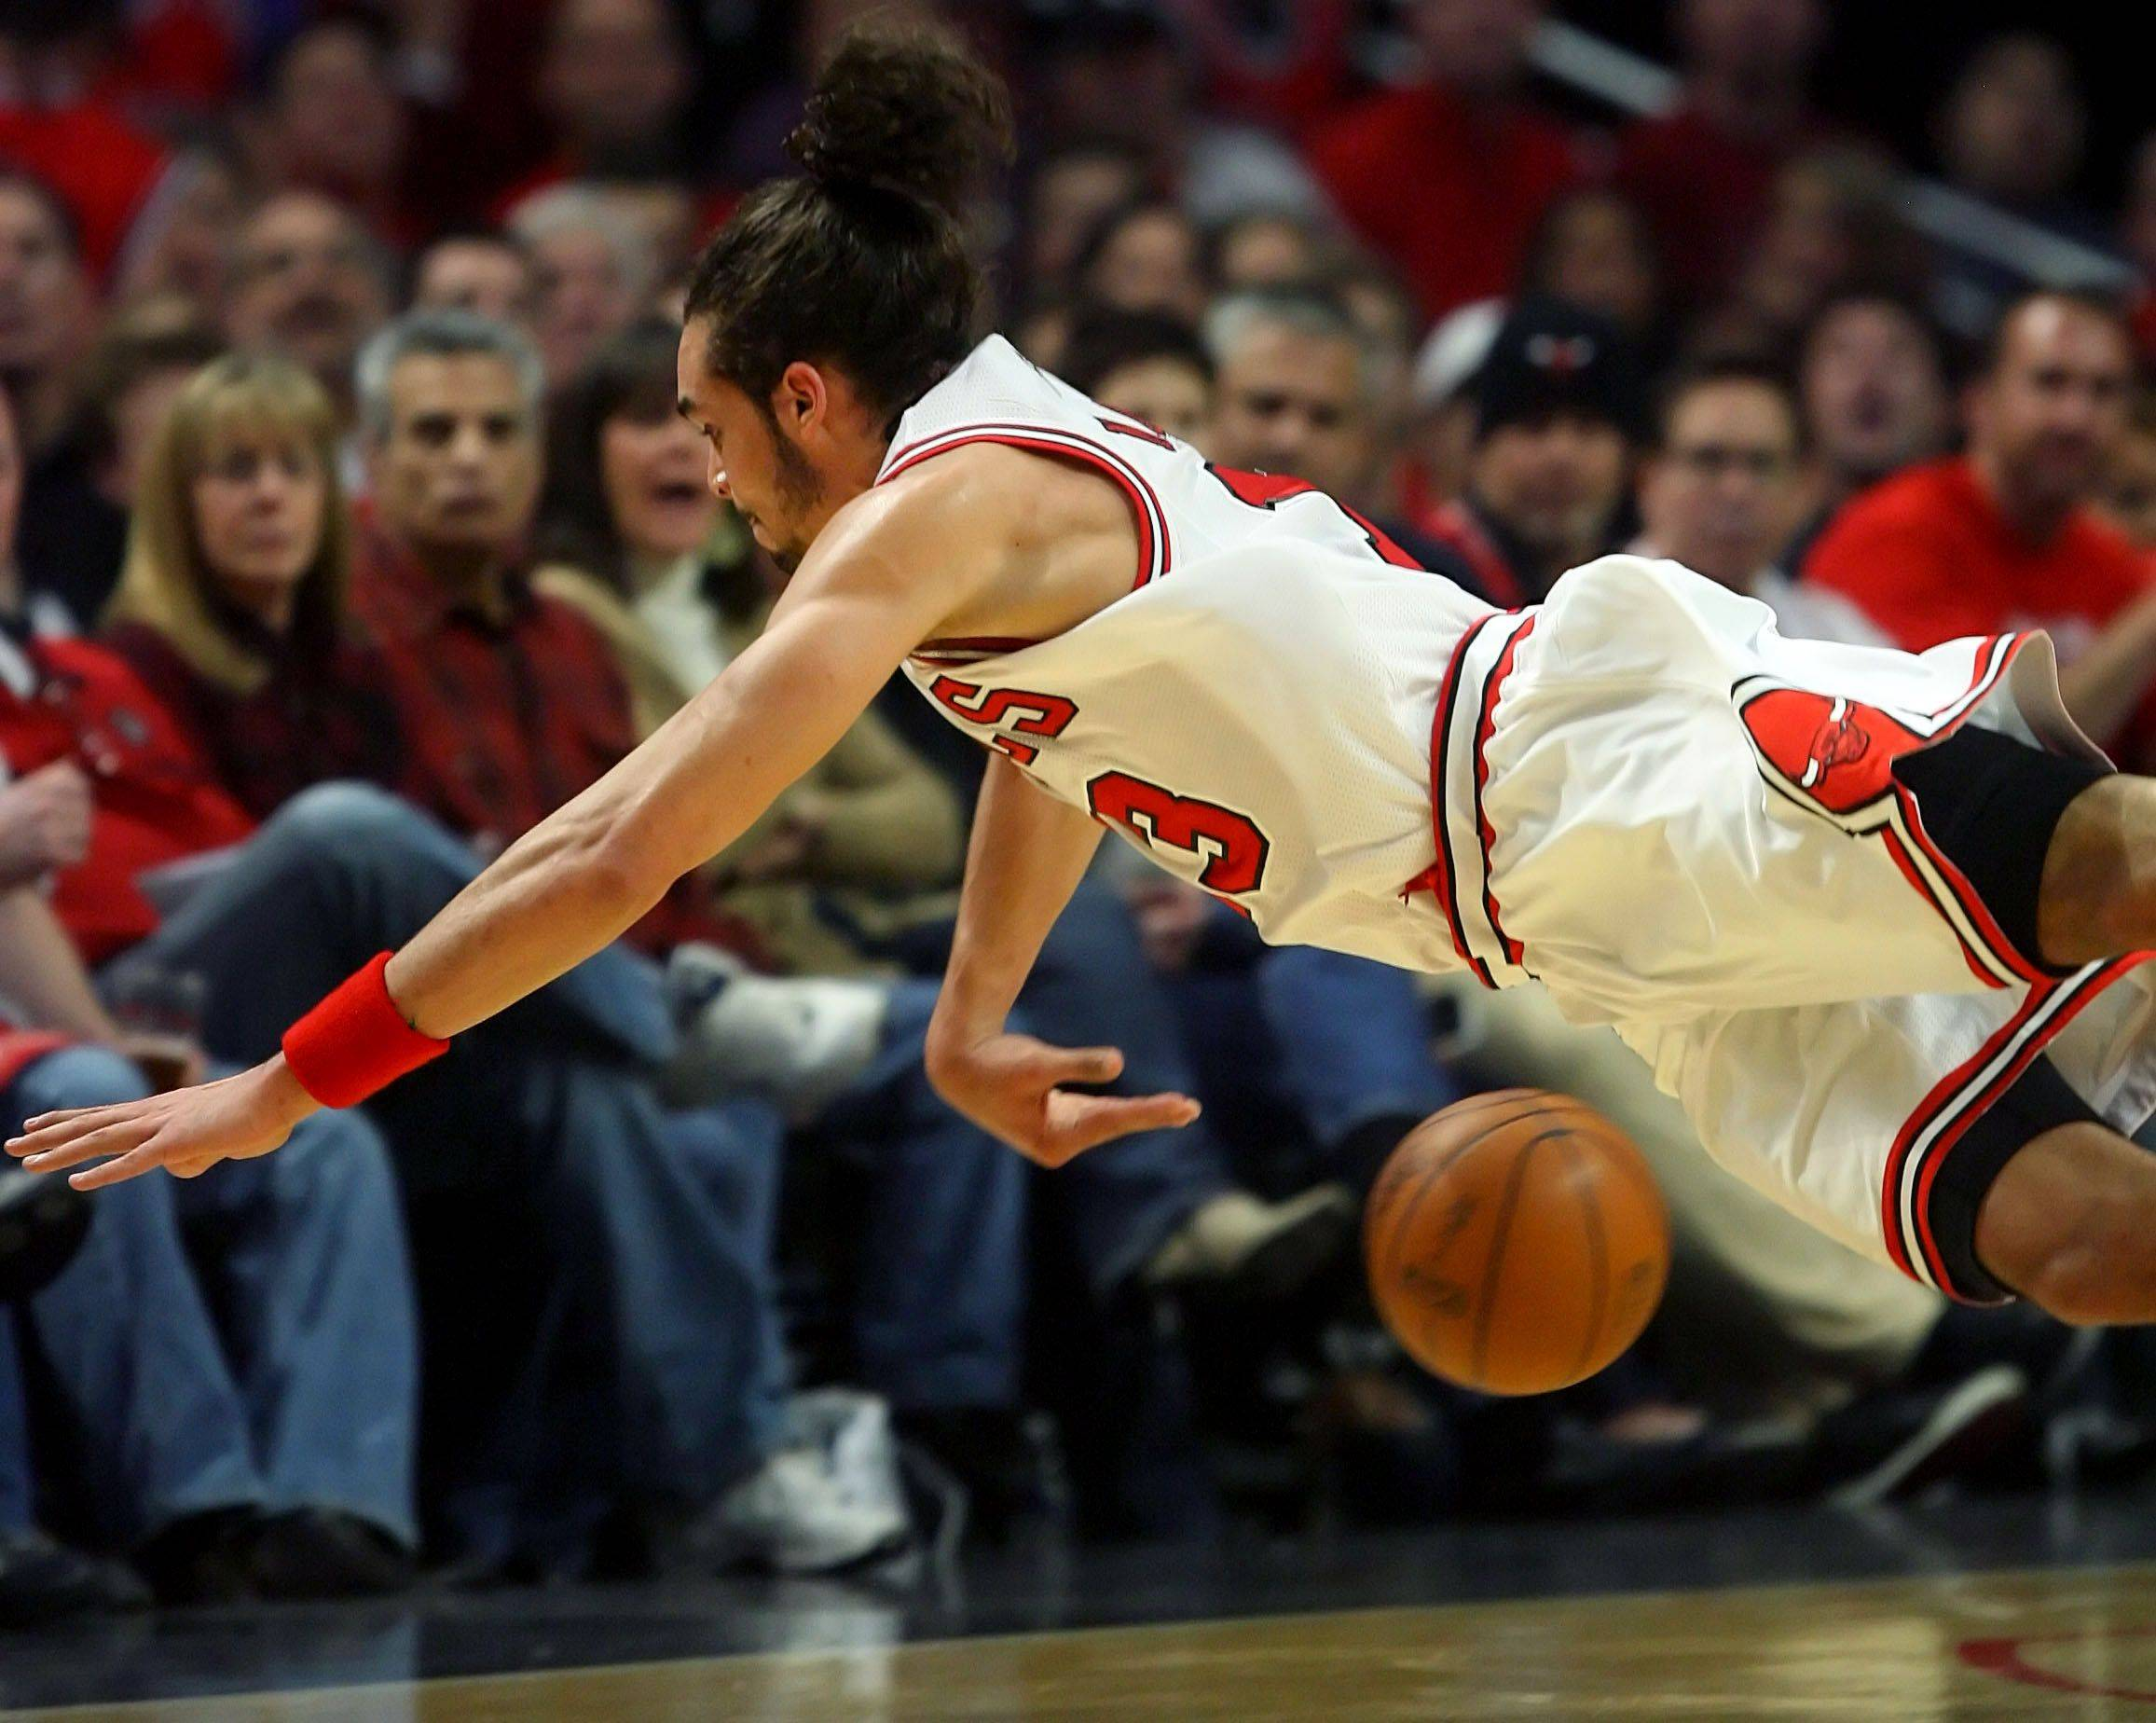 Chicago Bulls center Joakim Noah dives for a ball going out of bounds.